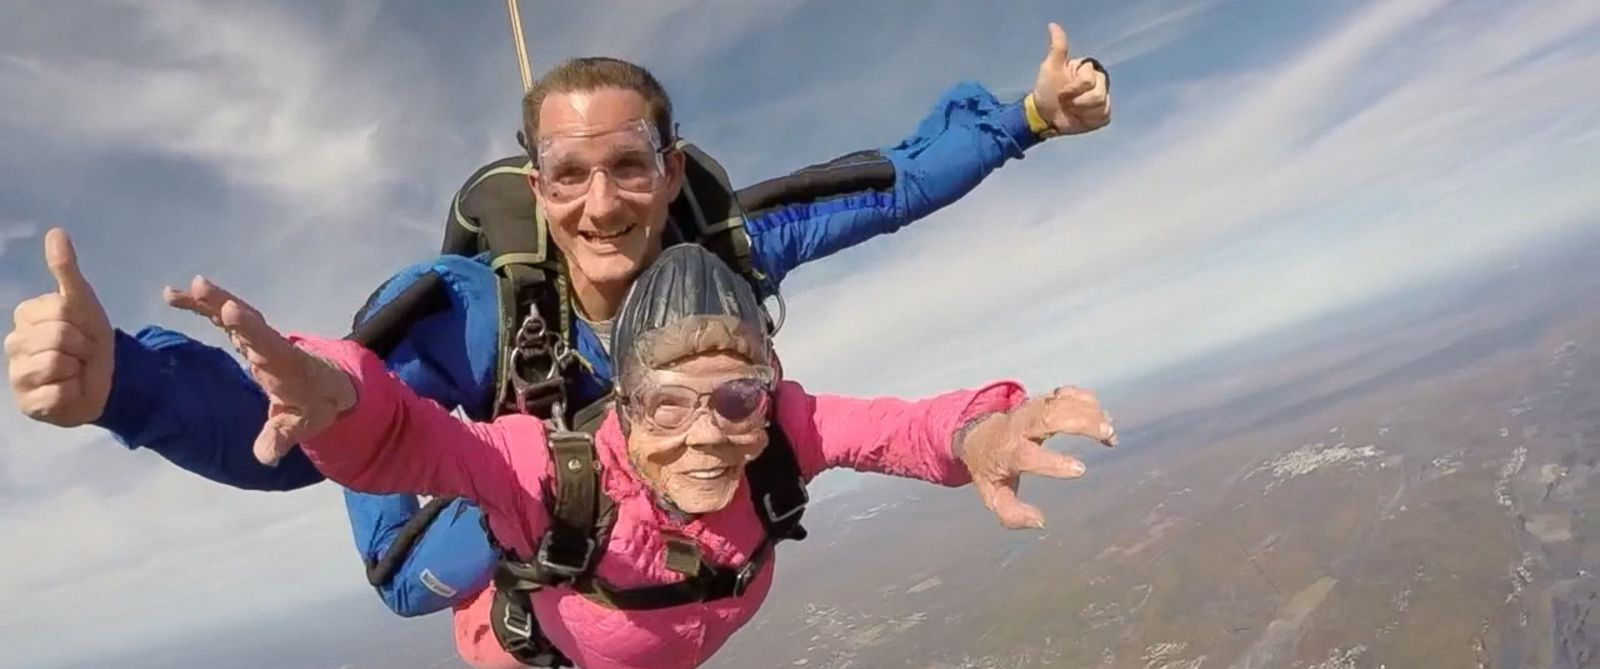 VIDEO: Eila Campbell celebrated her birthday by jumping out of a plane at 10,000 feet.